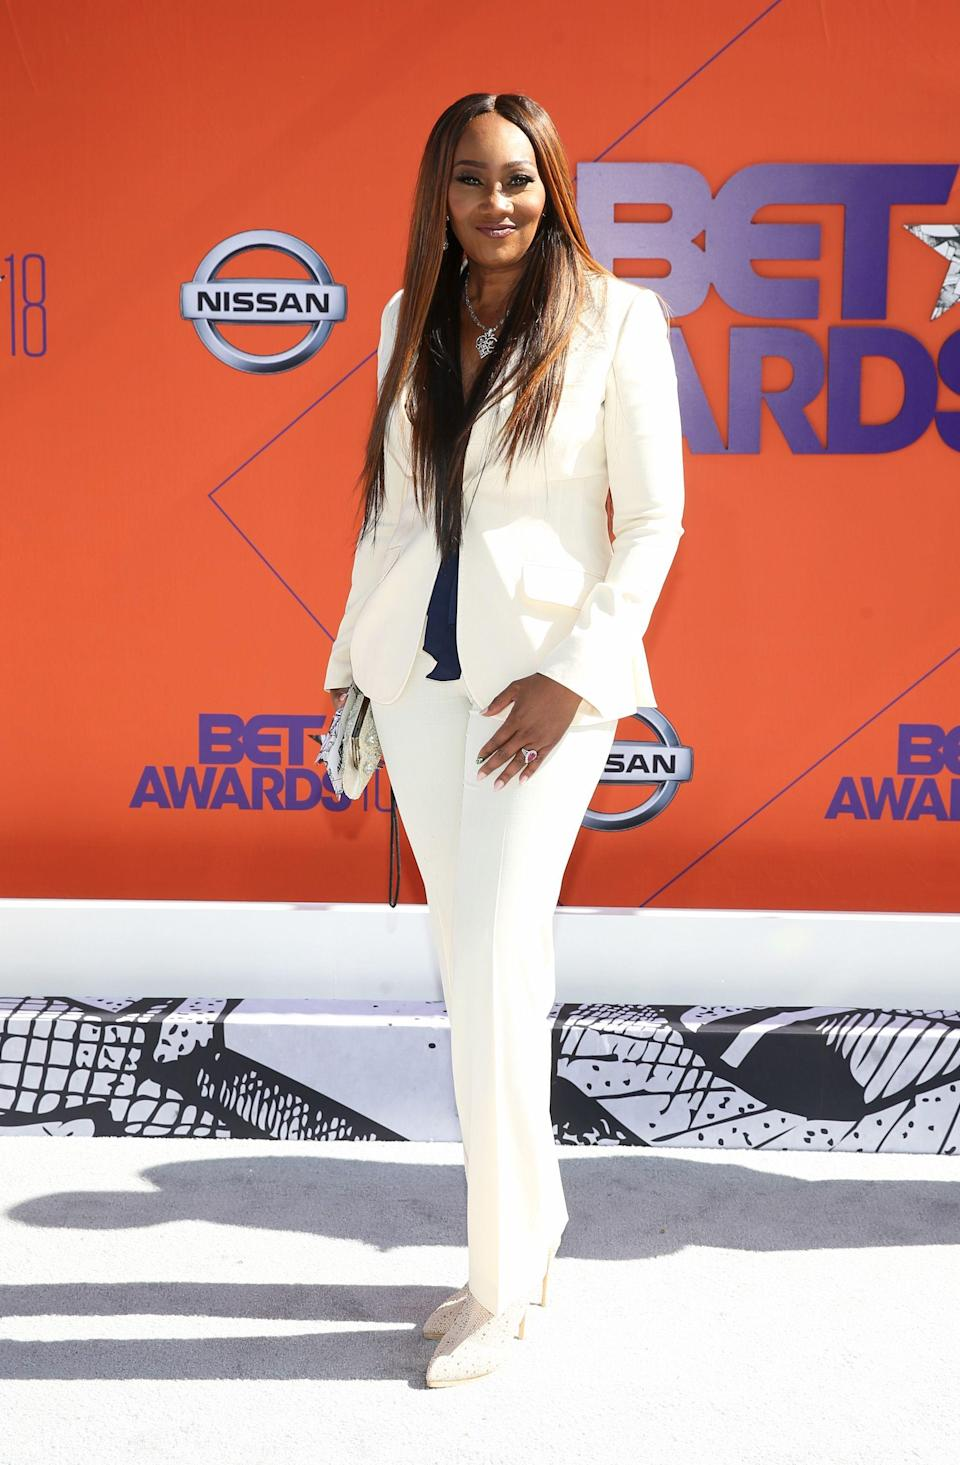 "<p>A white power suit will always come out on top. Especially when it's worn by Yolanda Adams.</p><span class=""copyright"">Photo: Bennett Raglin/Getty Images.</span>"